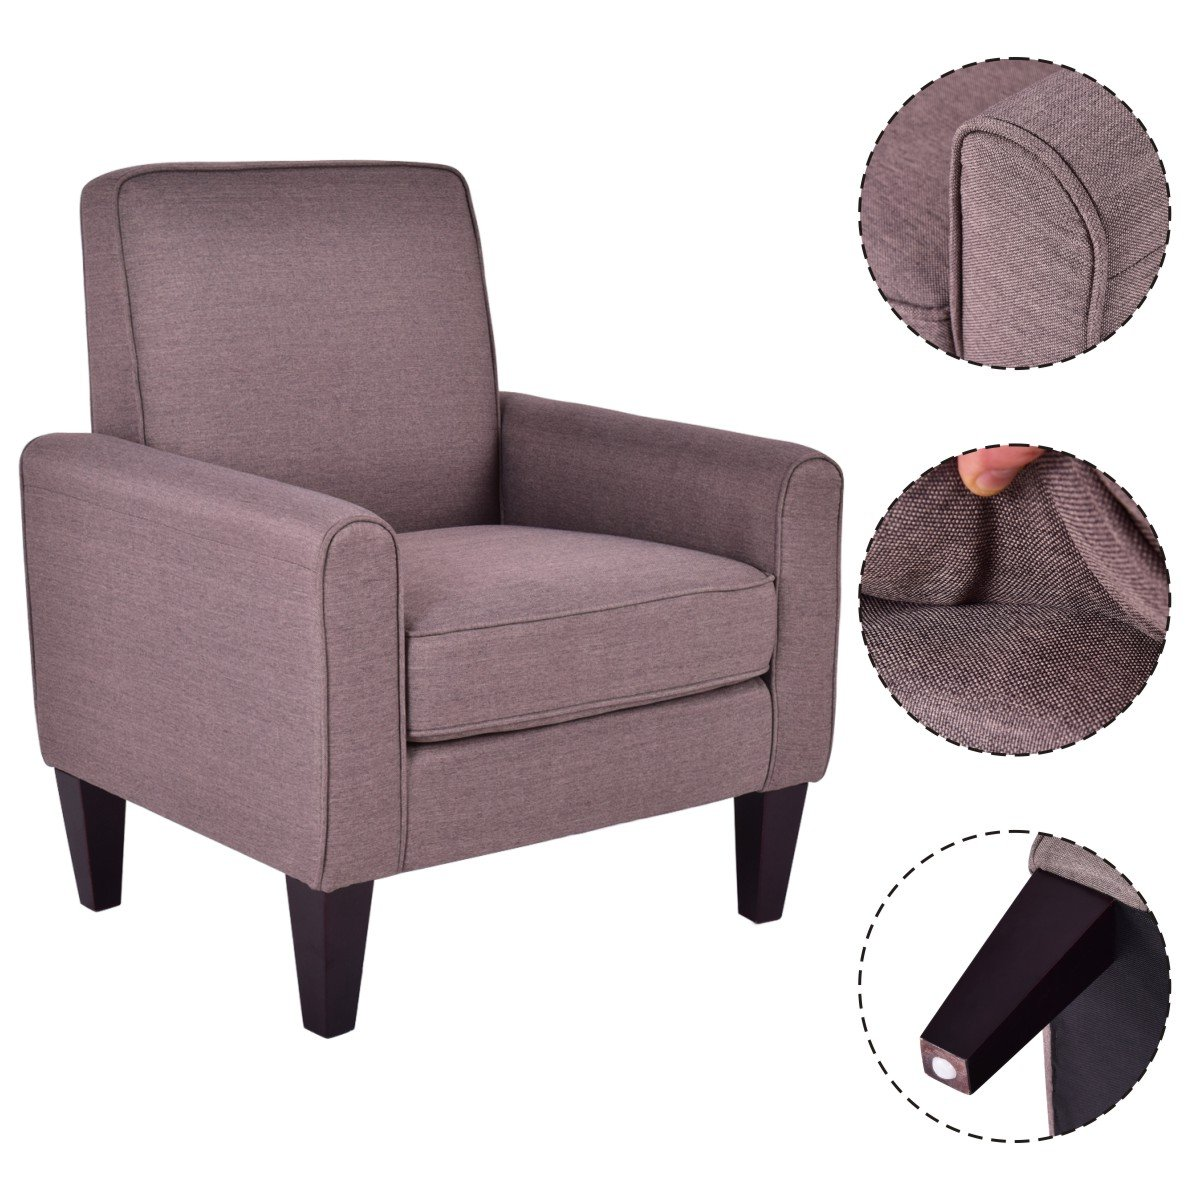 Leisure Upholstered Lounge Chair- Modern In Designs